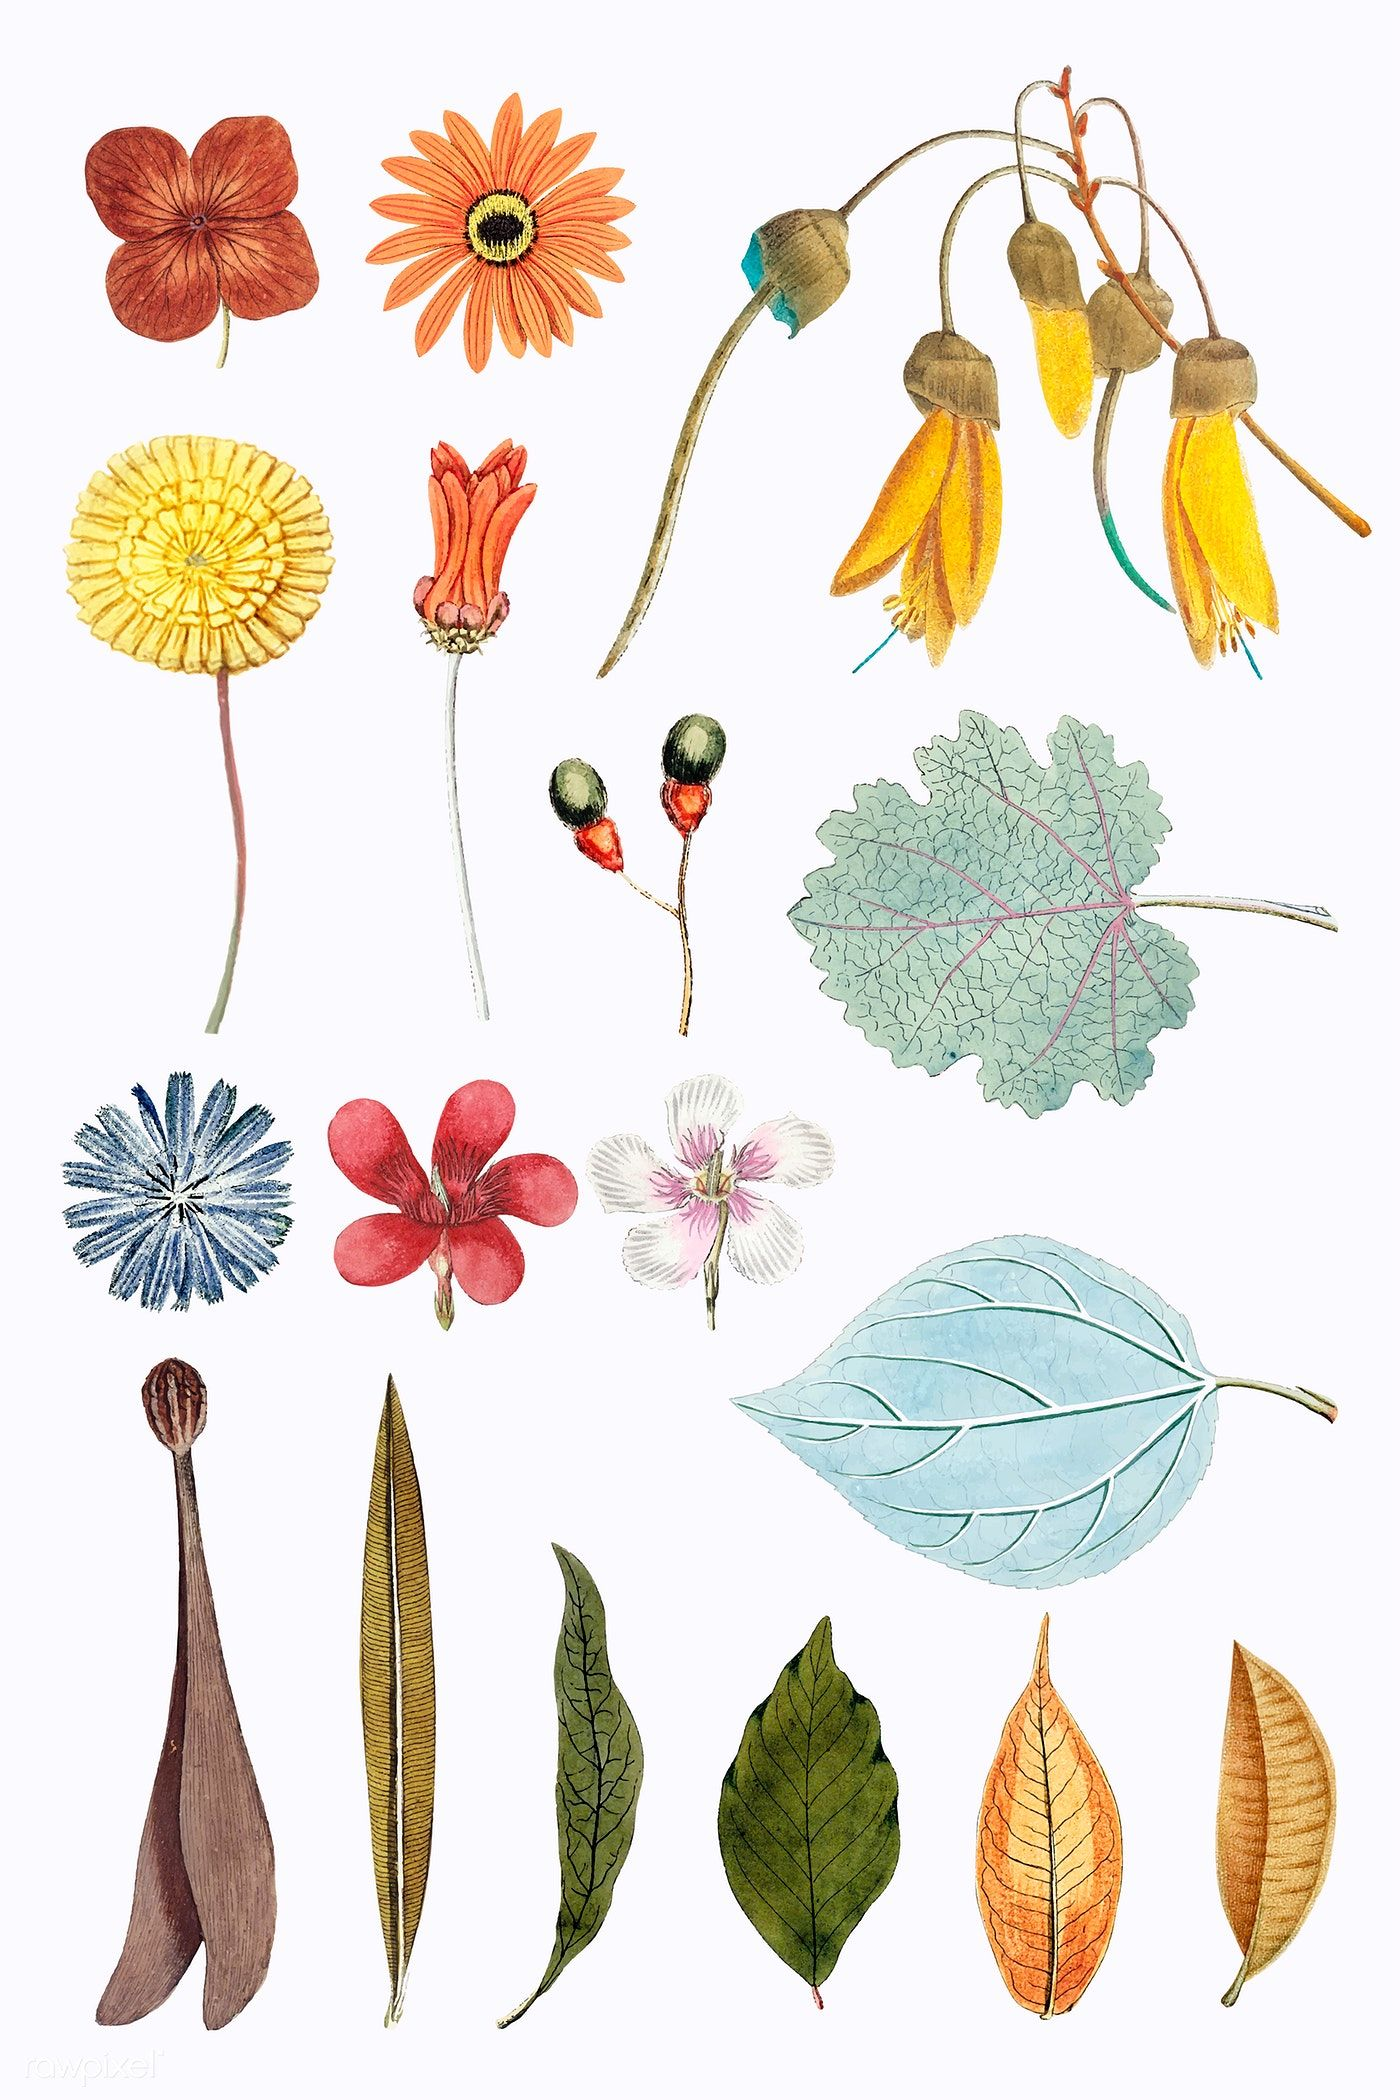 Download premium vector of Mixed flowers and leaves set